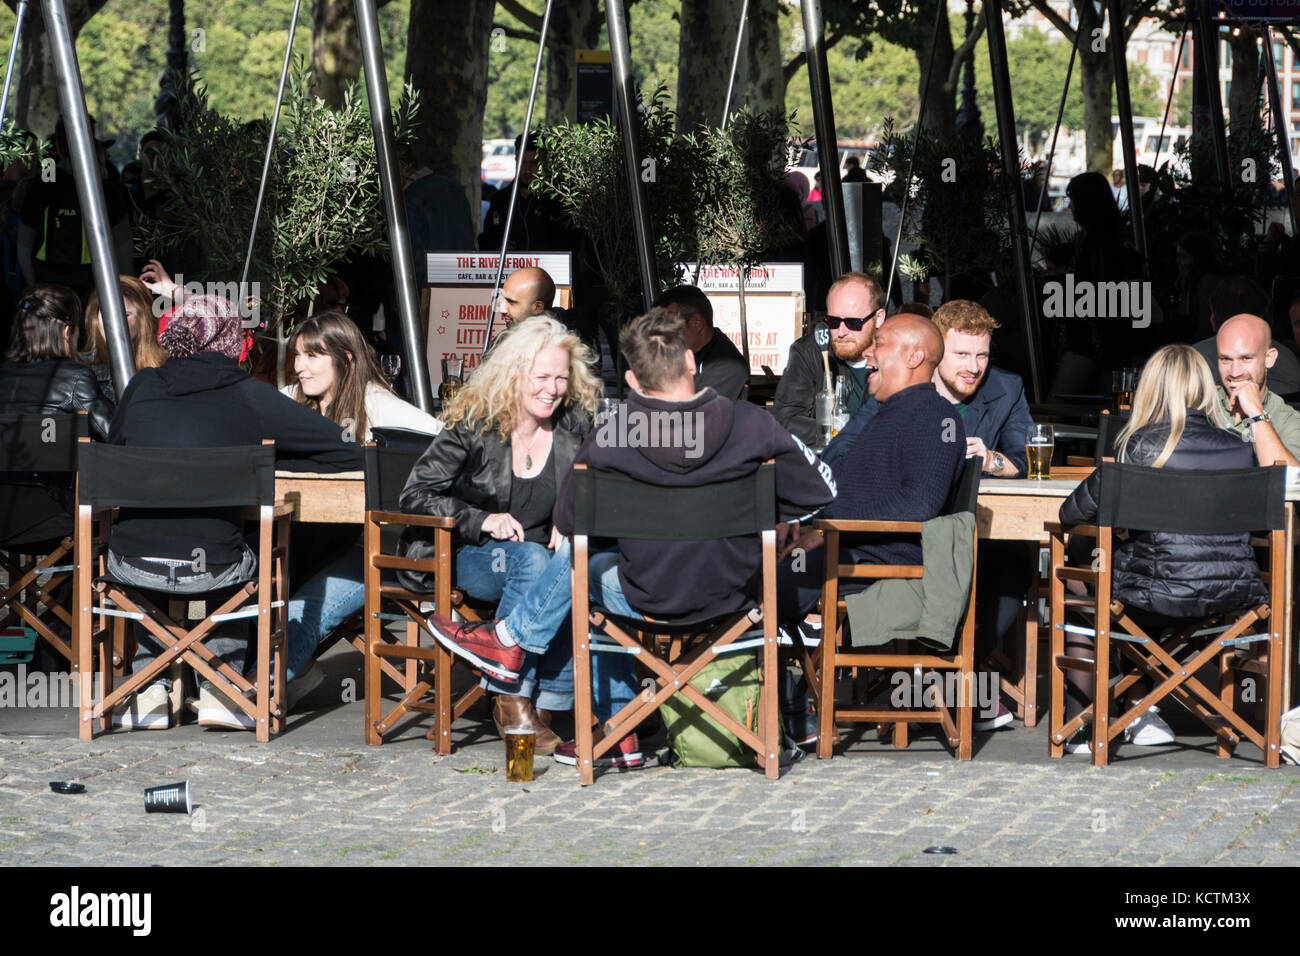 People socialising outside the British Film Institute at the South Bank Centre, London, UK - Stock Image